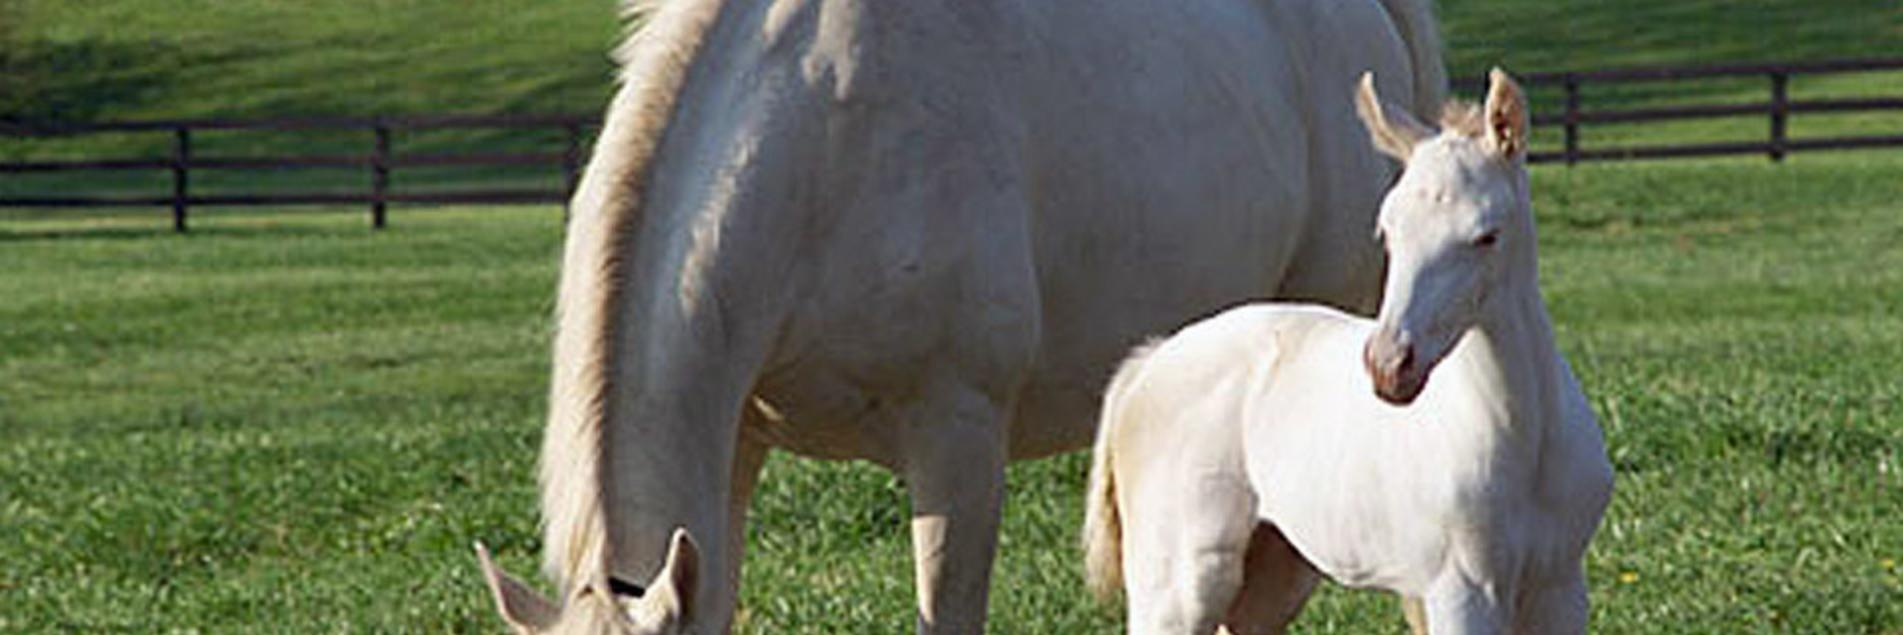 Whats New White Foal